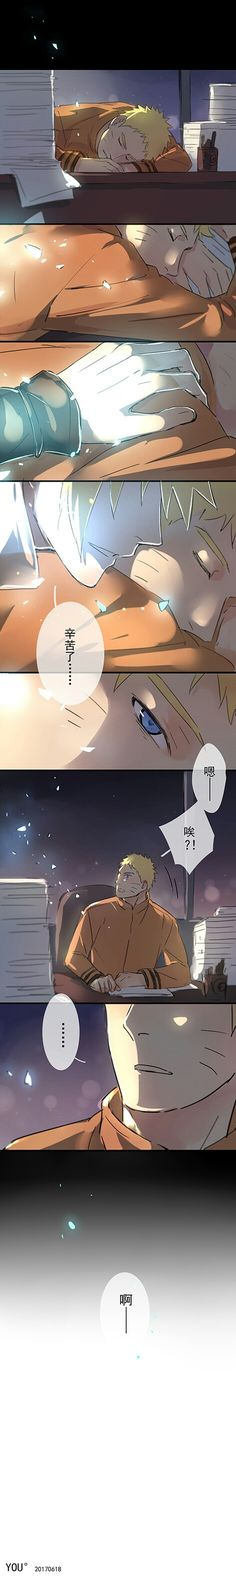 I have no idea what this says, but Minato speaking to his son always gets to my heart :'3